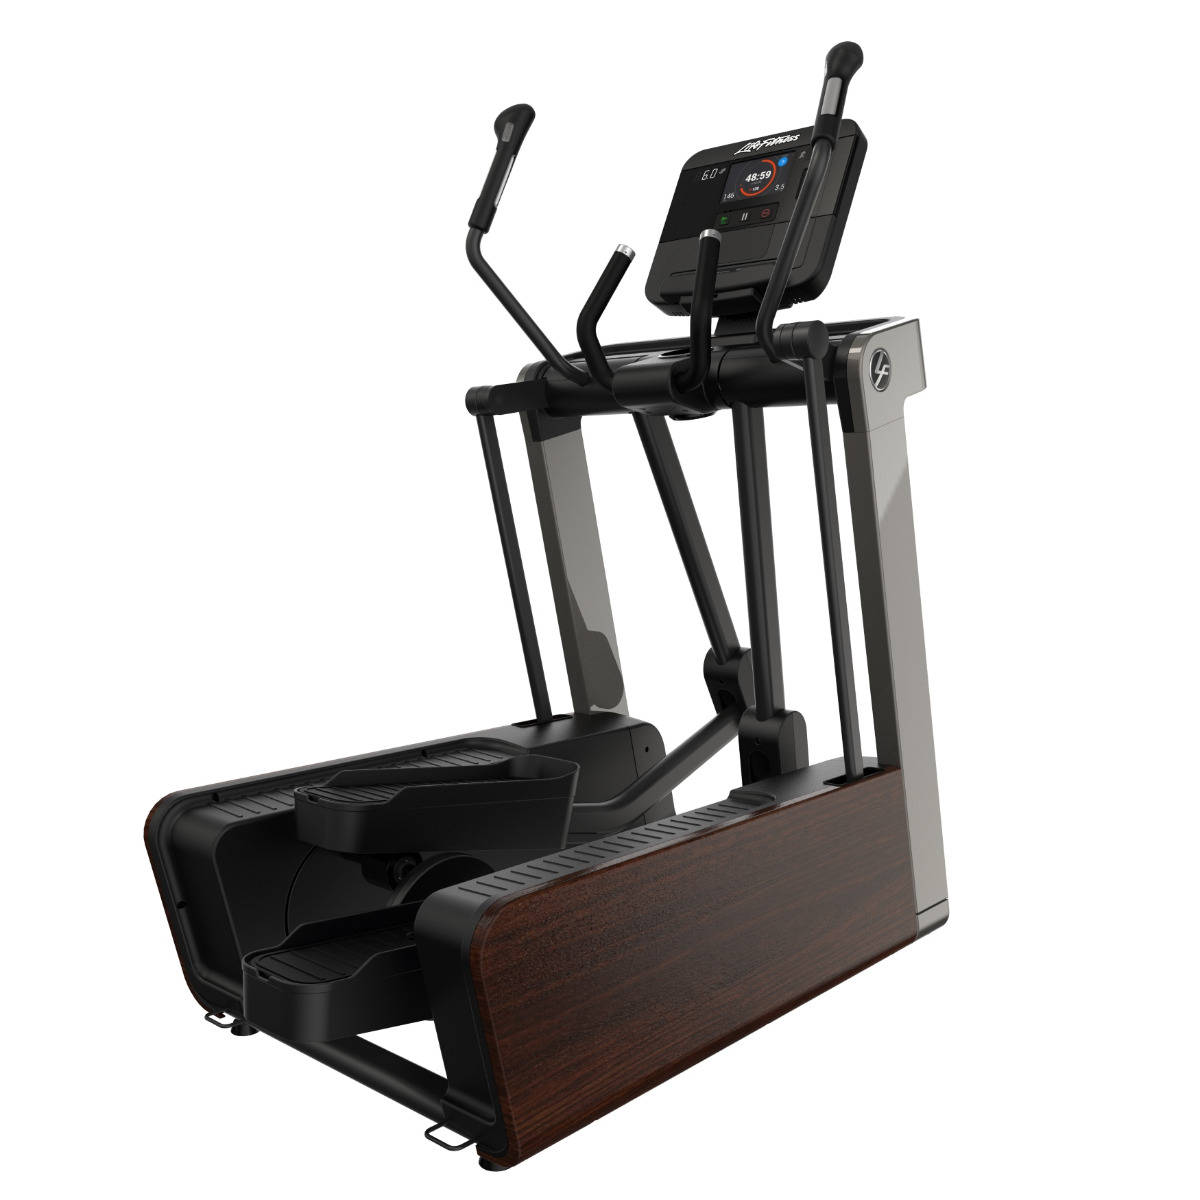 Life Fitness FS6 Elliptical Cross Trainer (Dark Walnut)